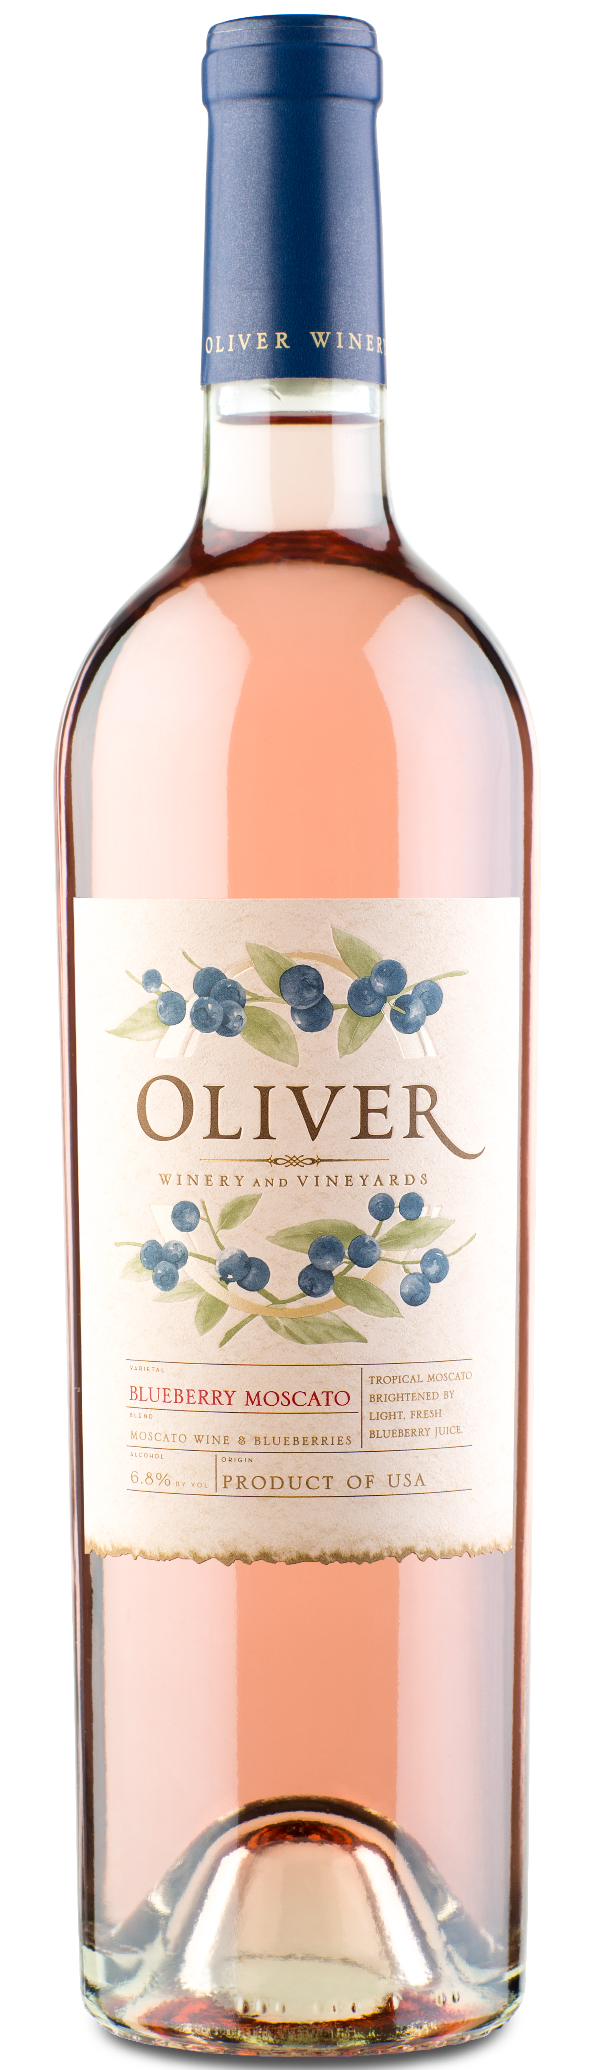 Oliver Winery Vine Series Blueberry Moscato Wine